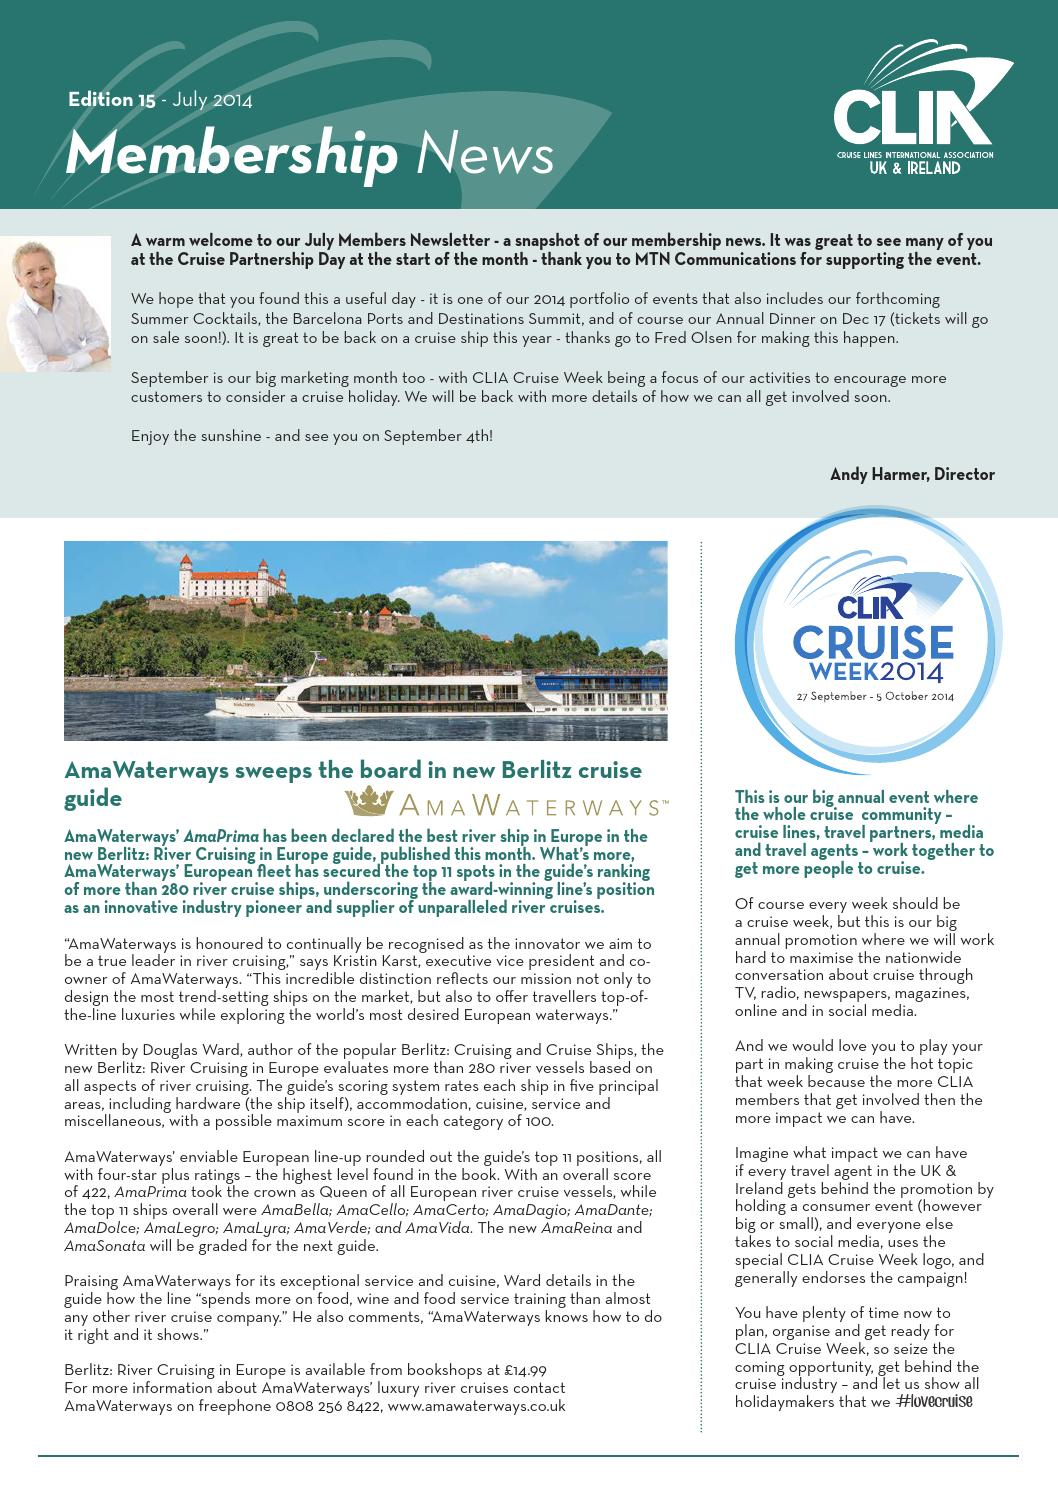 CLIA UK & Ireland Monthly Newsletter Edition 15 by Andy